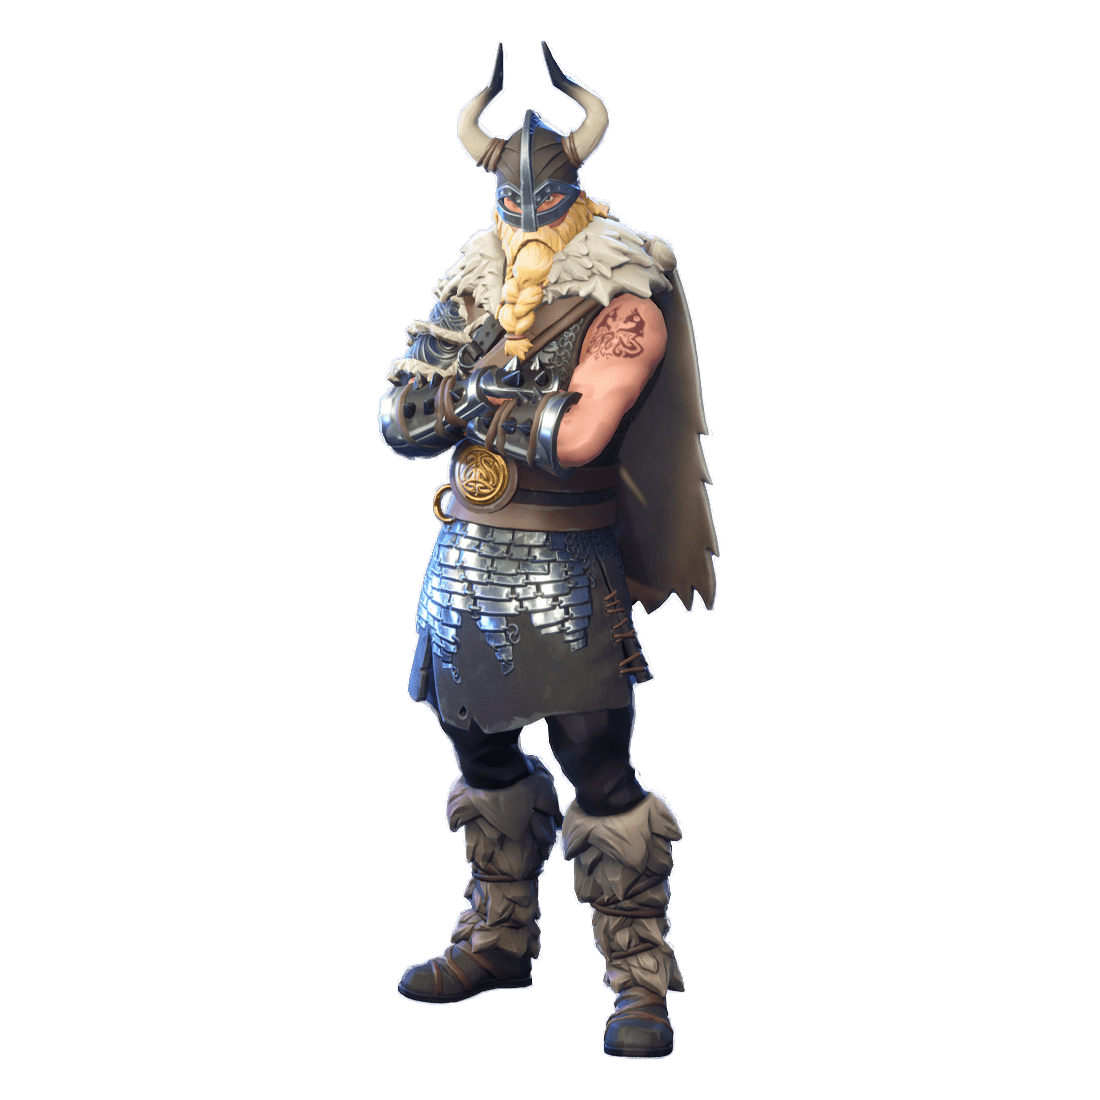 magnus fortnite outfit skin how get info updates #27075